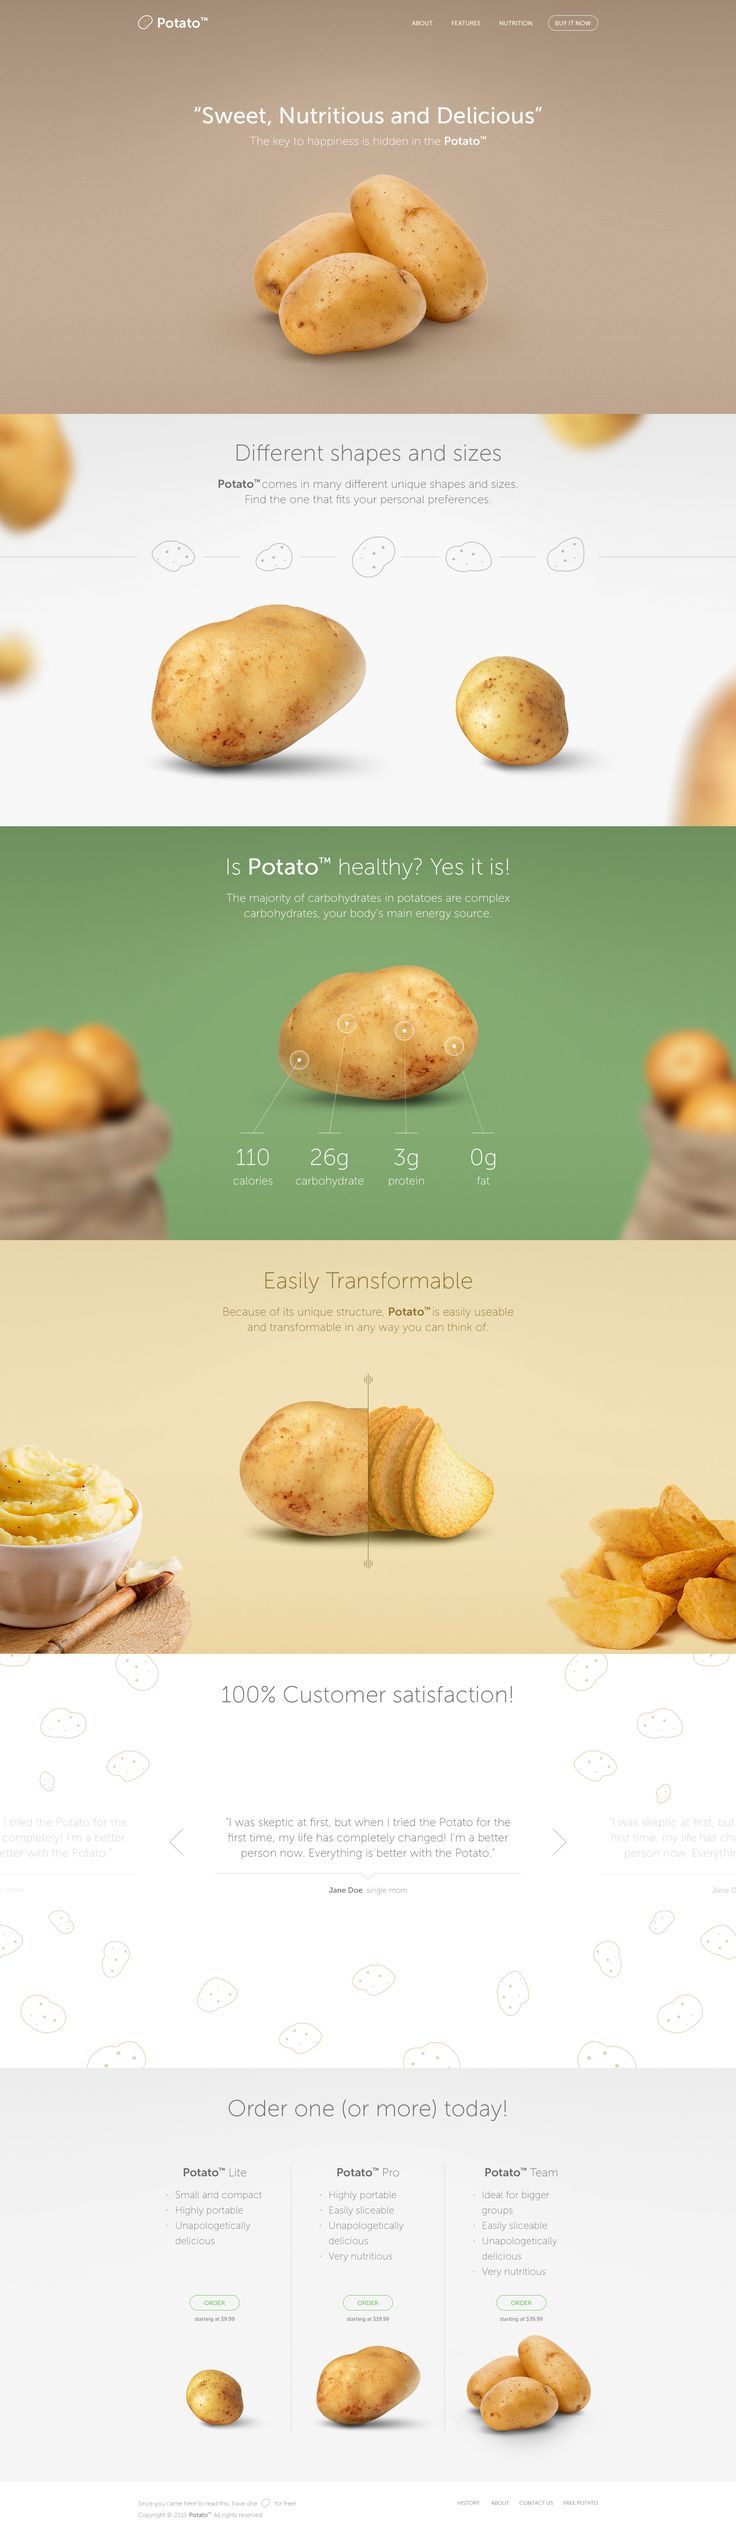 Potato. Finally, an official site for potato. #webdesign #design (View more at www.aldenchong.com)